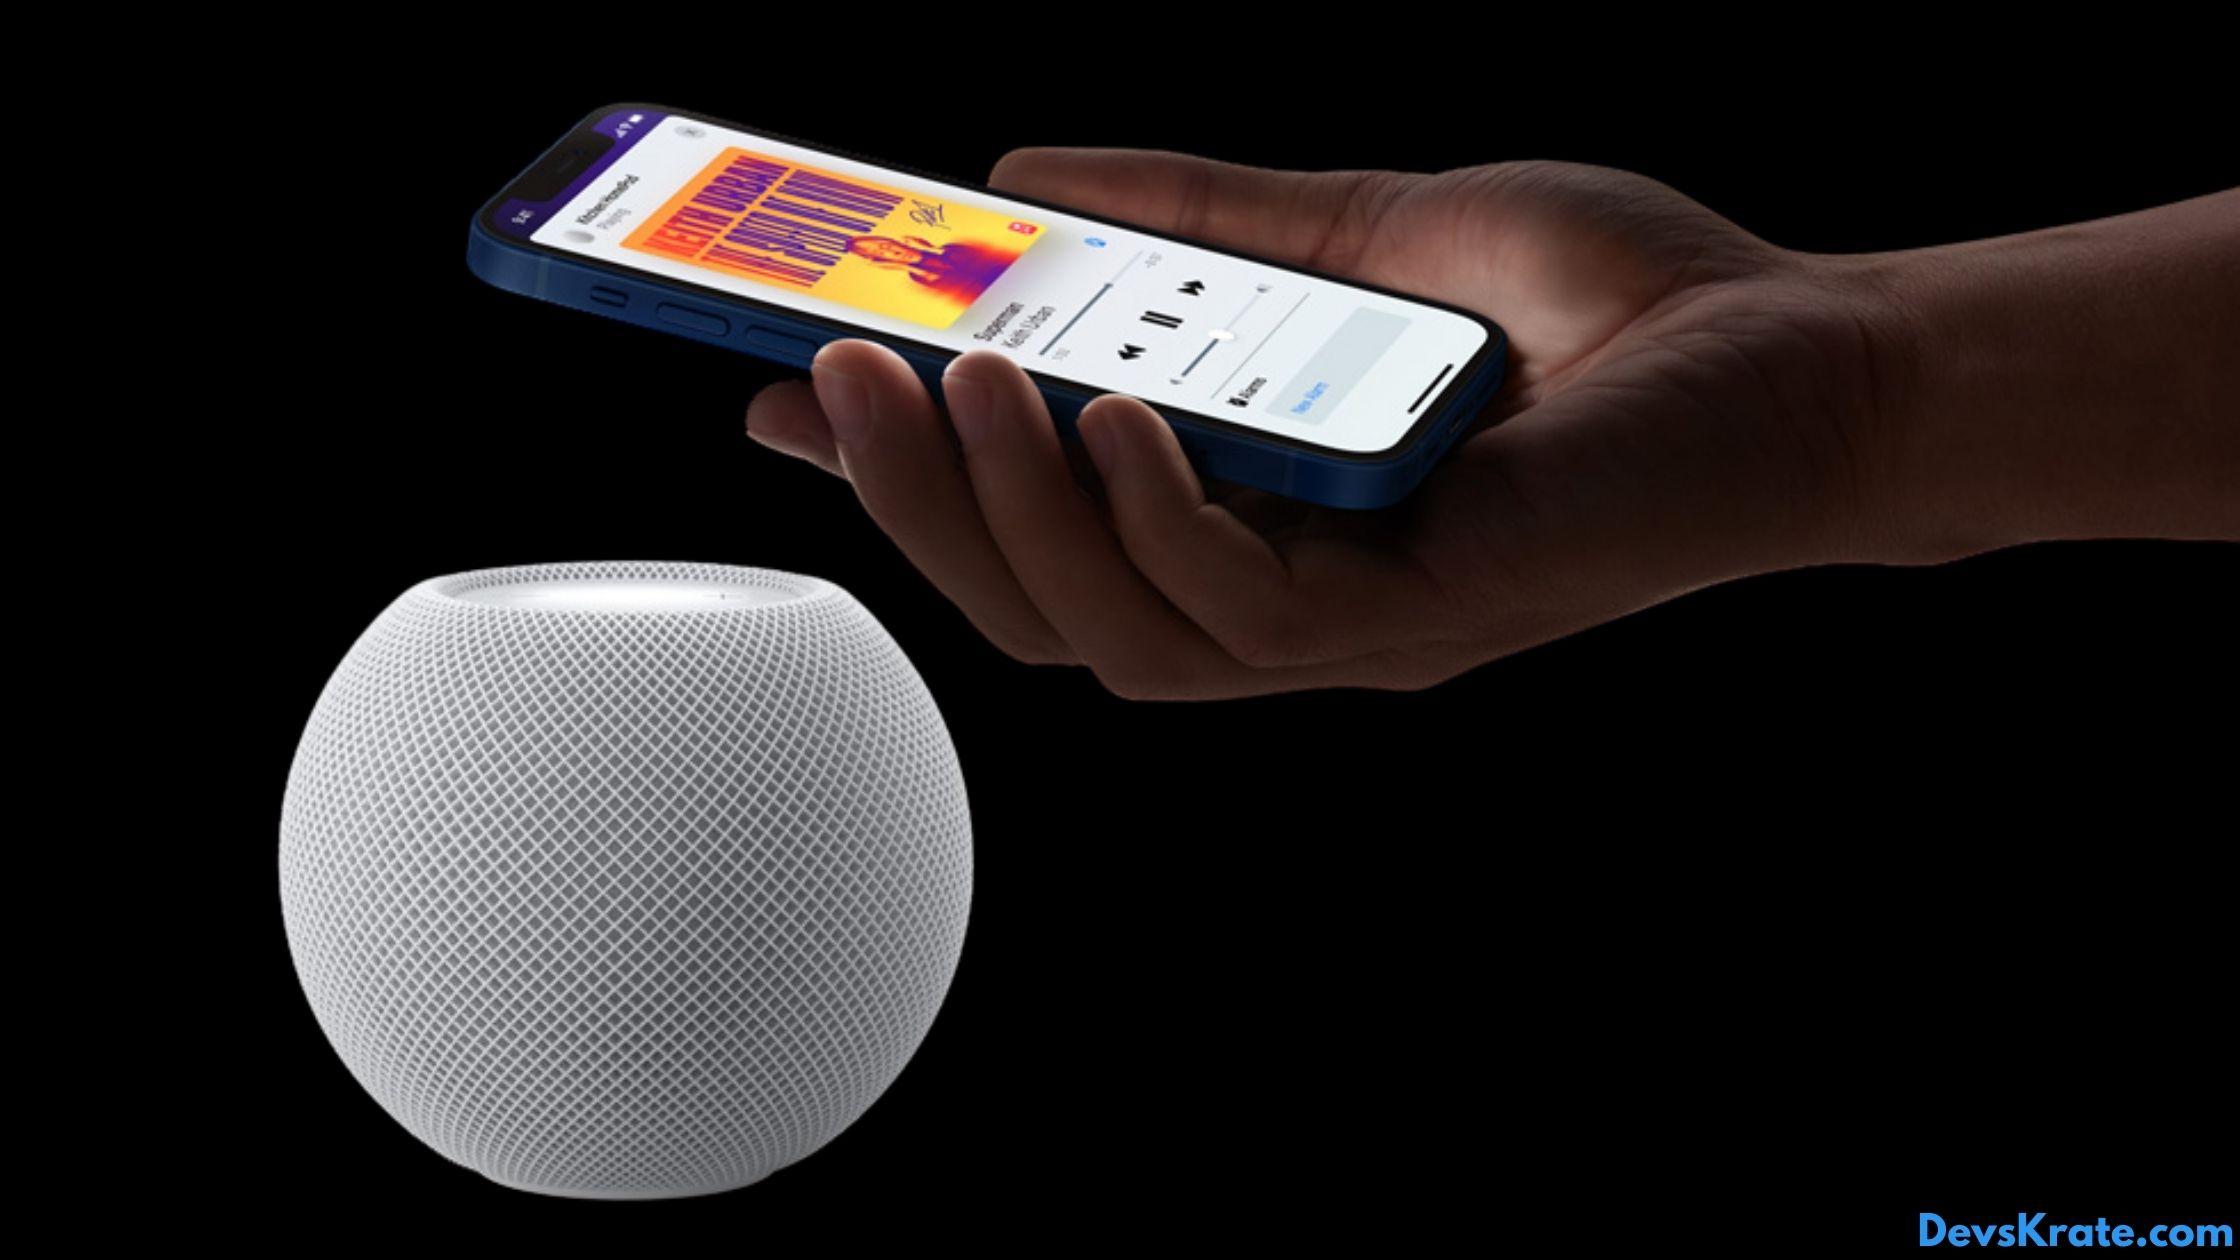 Apple HomePod mini specs and features.